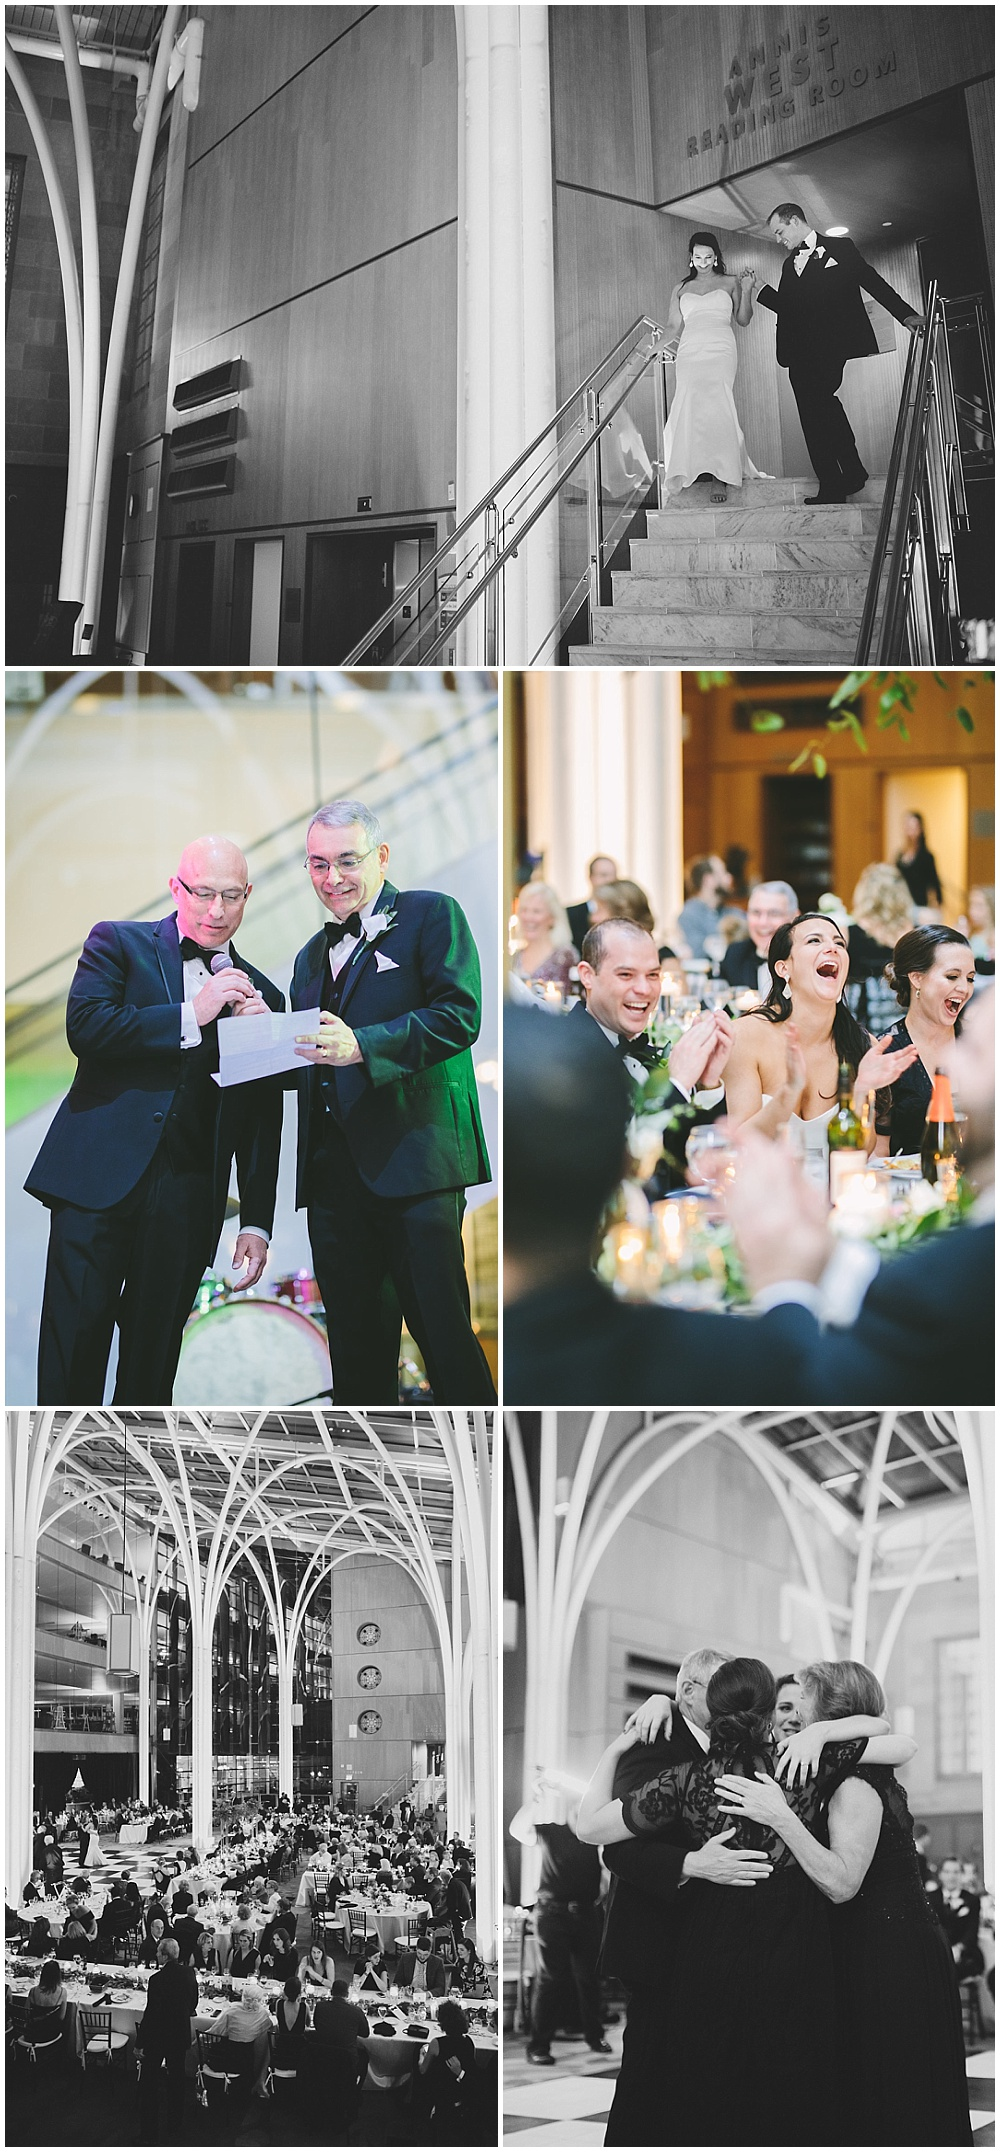 A timeless, modern wedding celebration at the Indianapolis Public Library. A black and white wedding with gold accents. | Jessica Dum Wedding Coordination